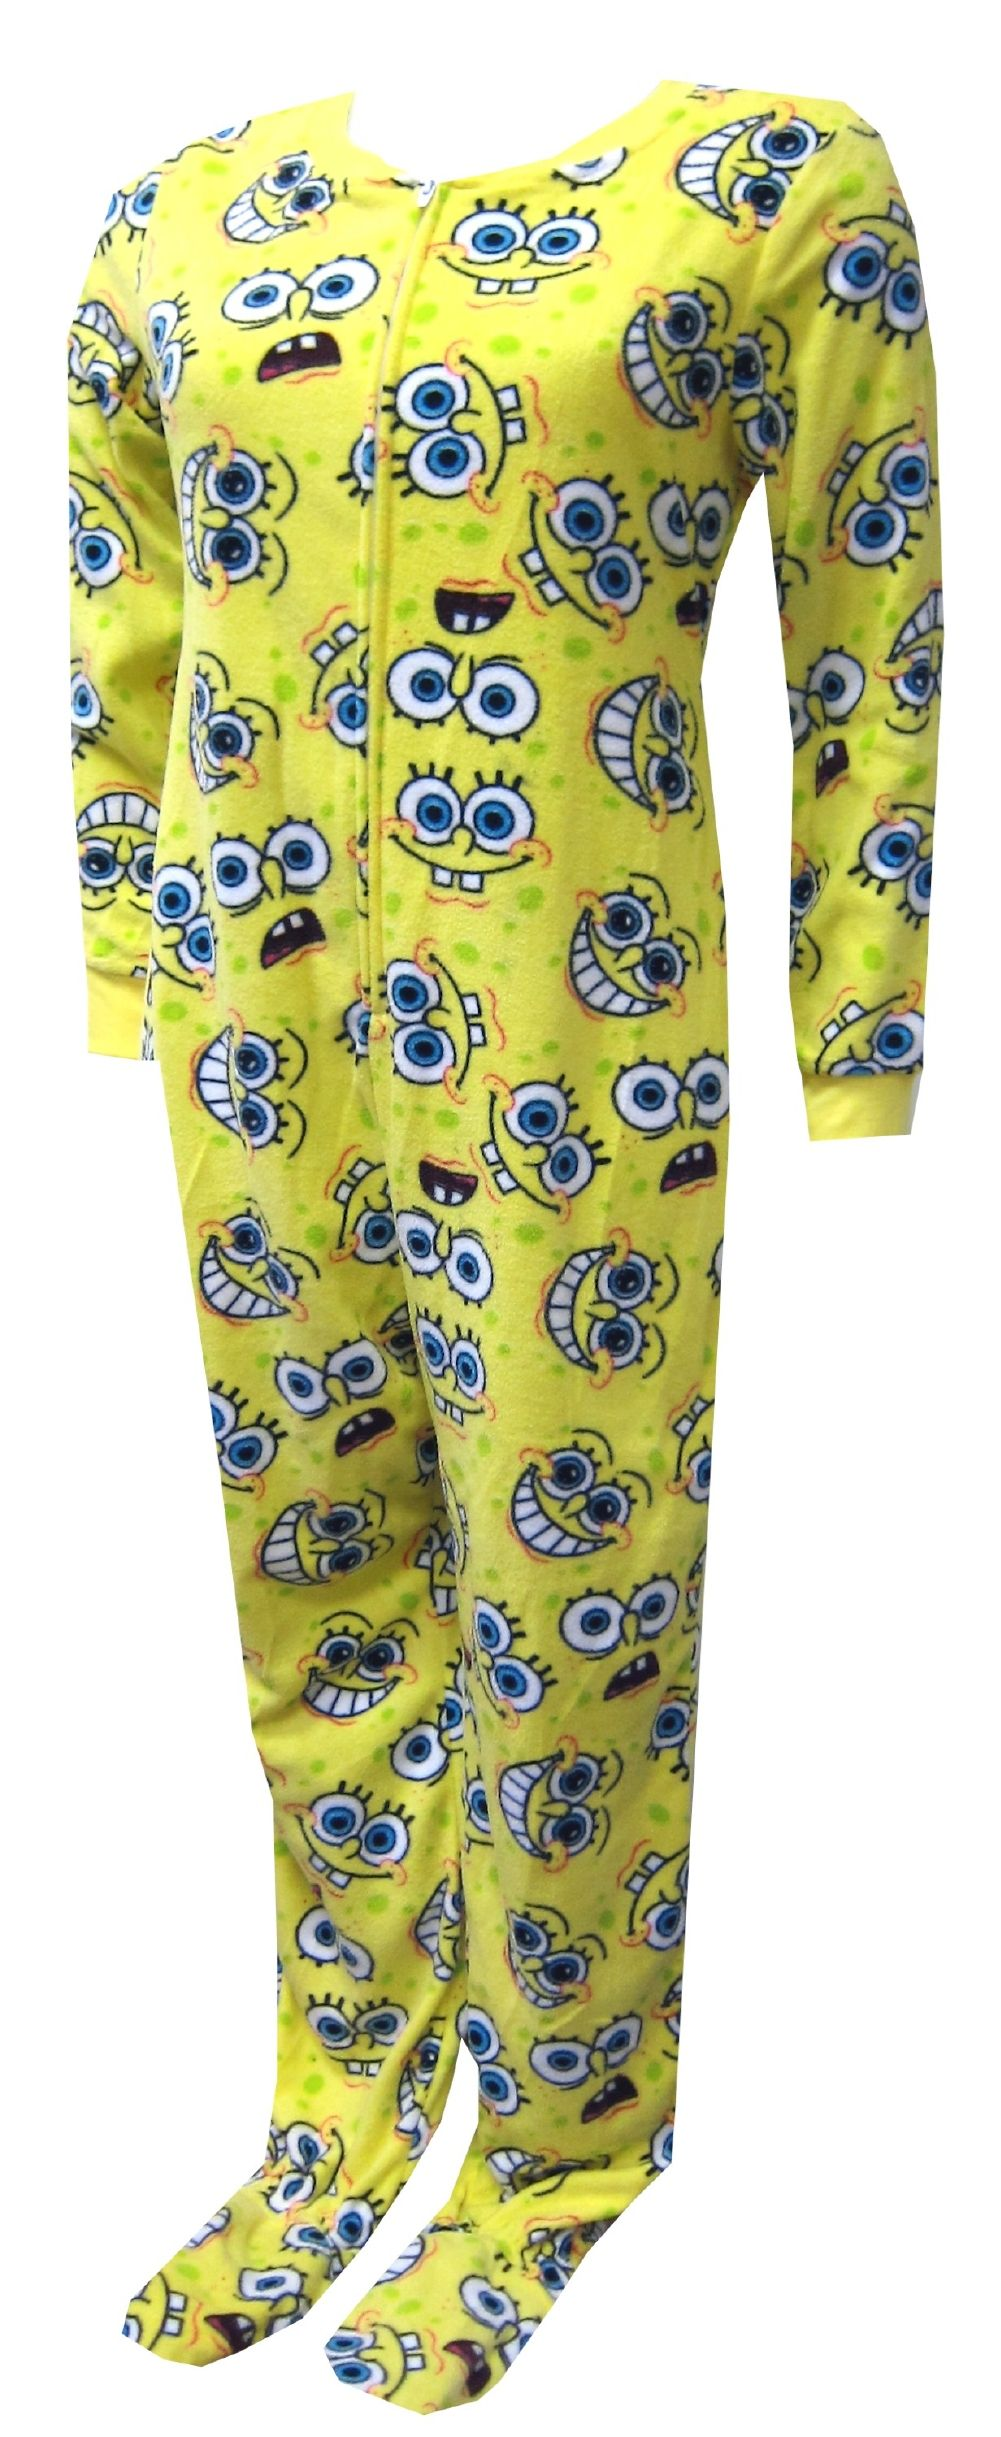 9ee96a7a2be8d These pajama sets for women feature the many faces of SpongeBob on yellow  micro polar fleece. These one piece footie pajamas have yellow ribbed cuffs  at the ...